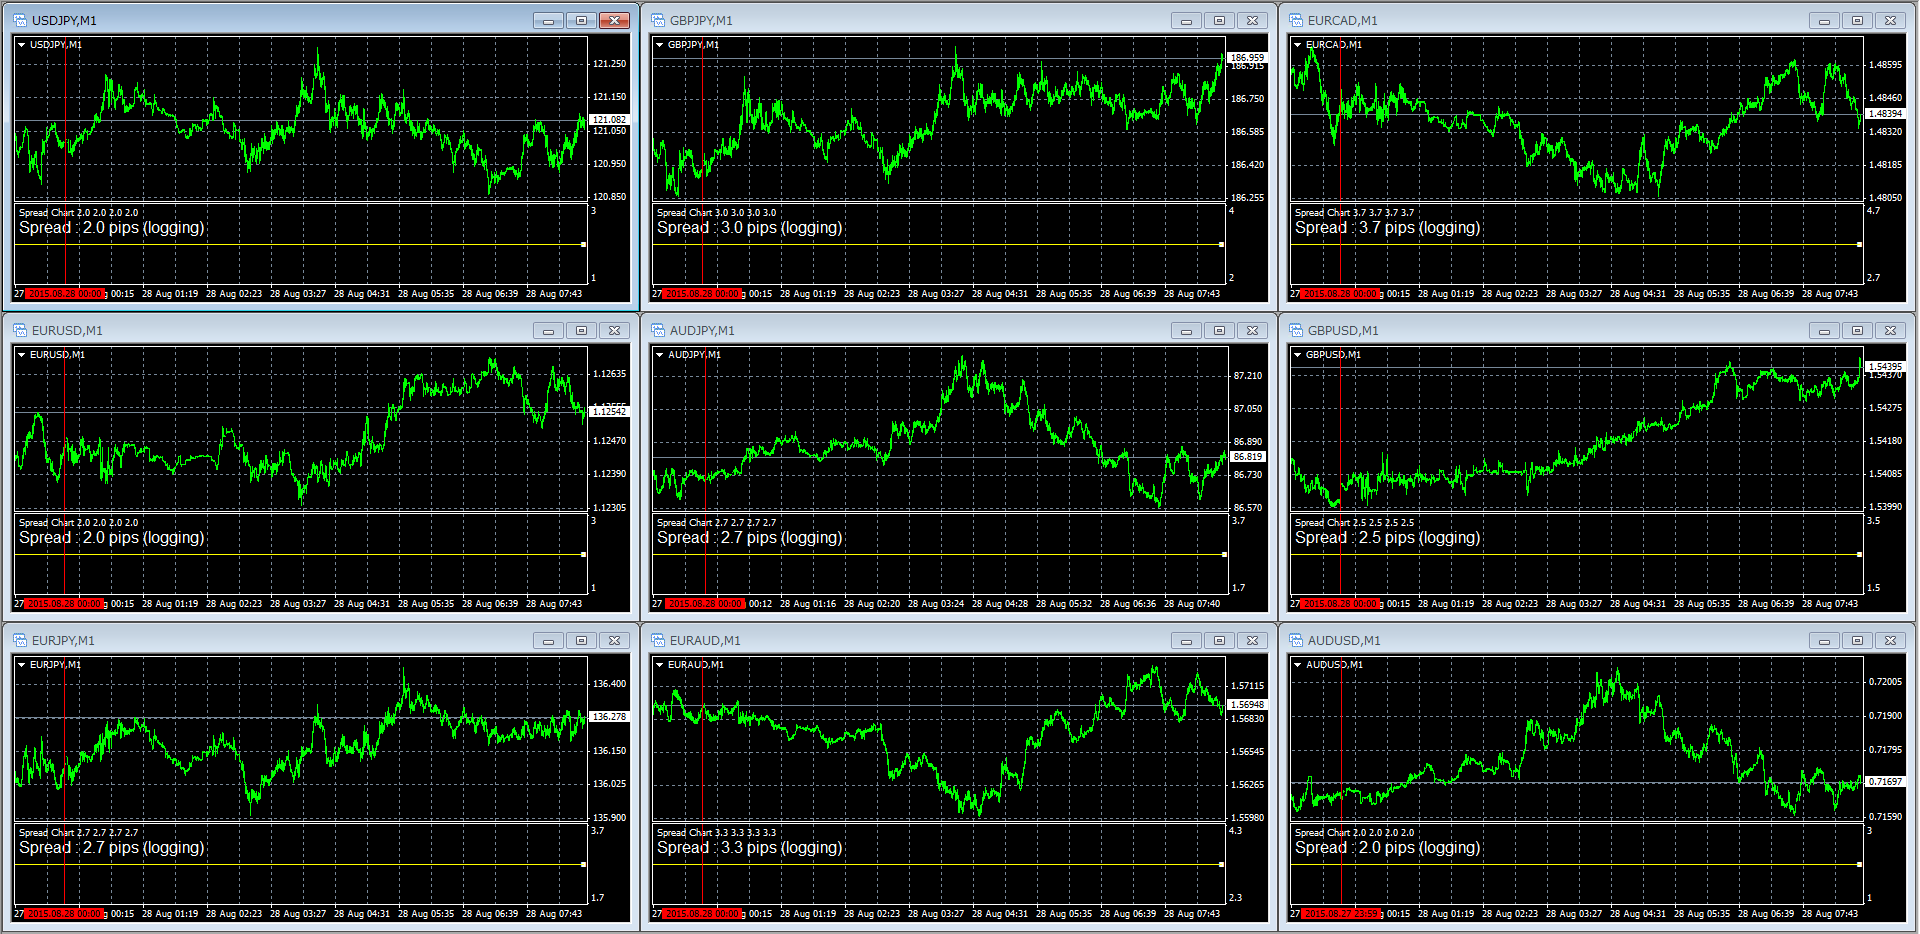 gemforex_new_server_spread.png